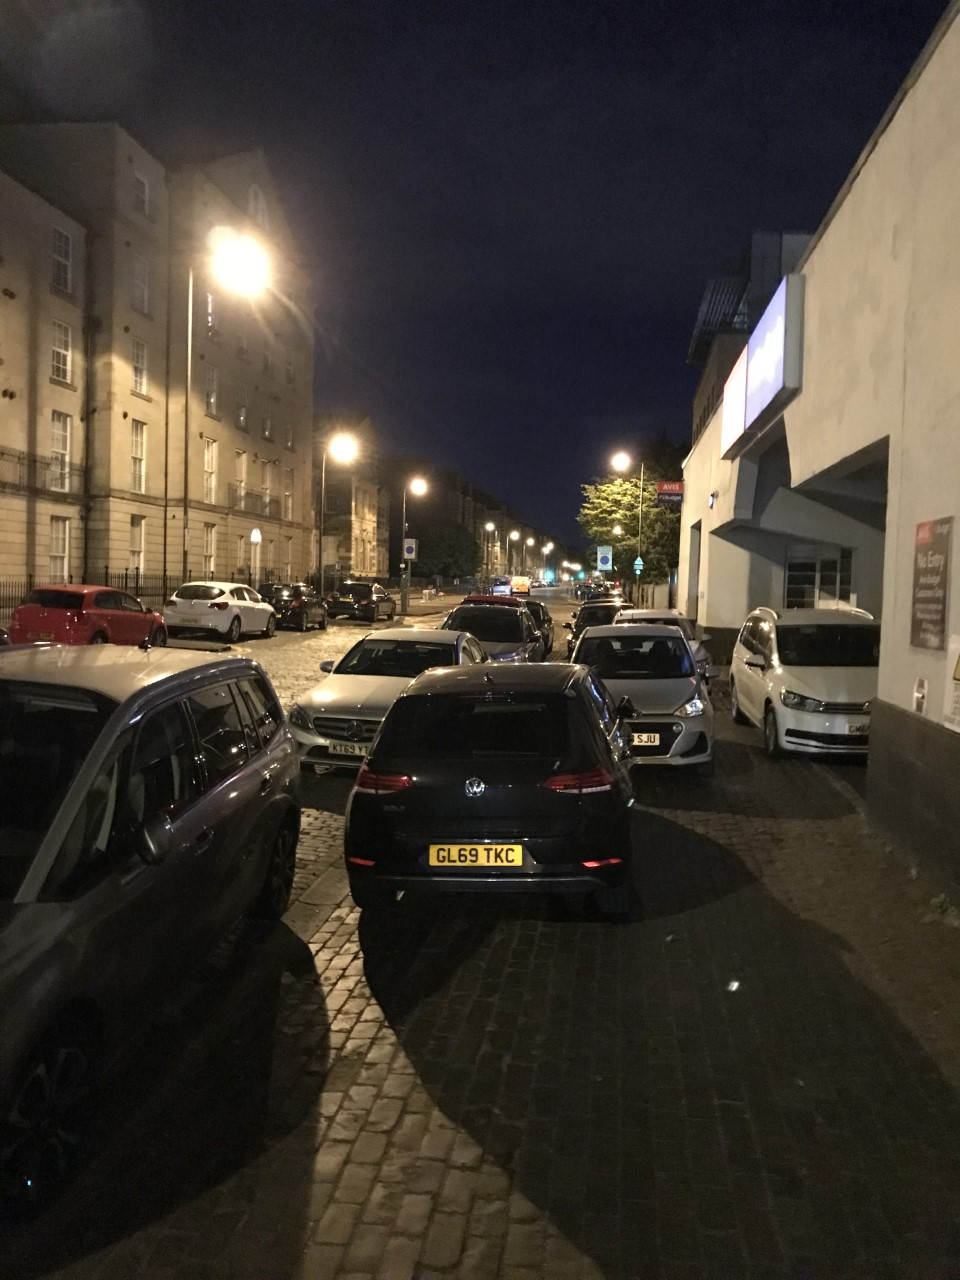 parked cars in the dark